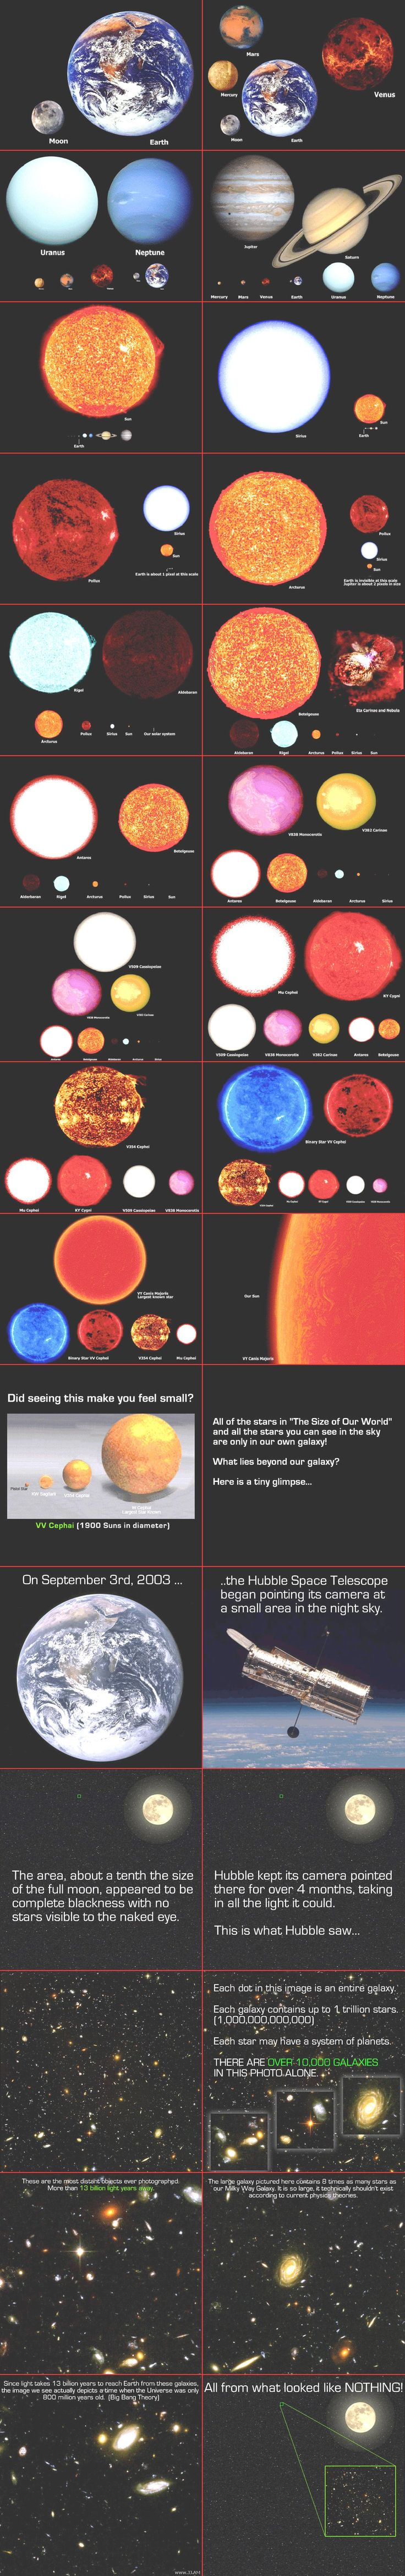 which one is the biggest planet or star in the universe | Holy Cow We're Small! Biggest Stars to Biggest Galaxies